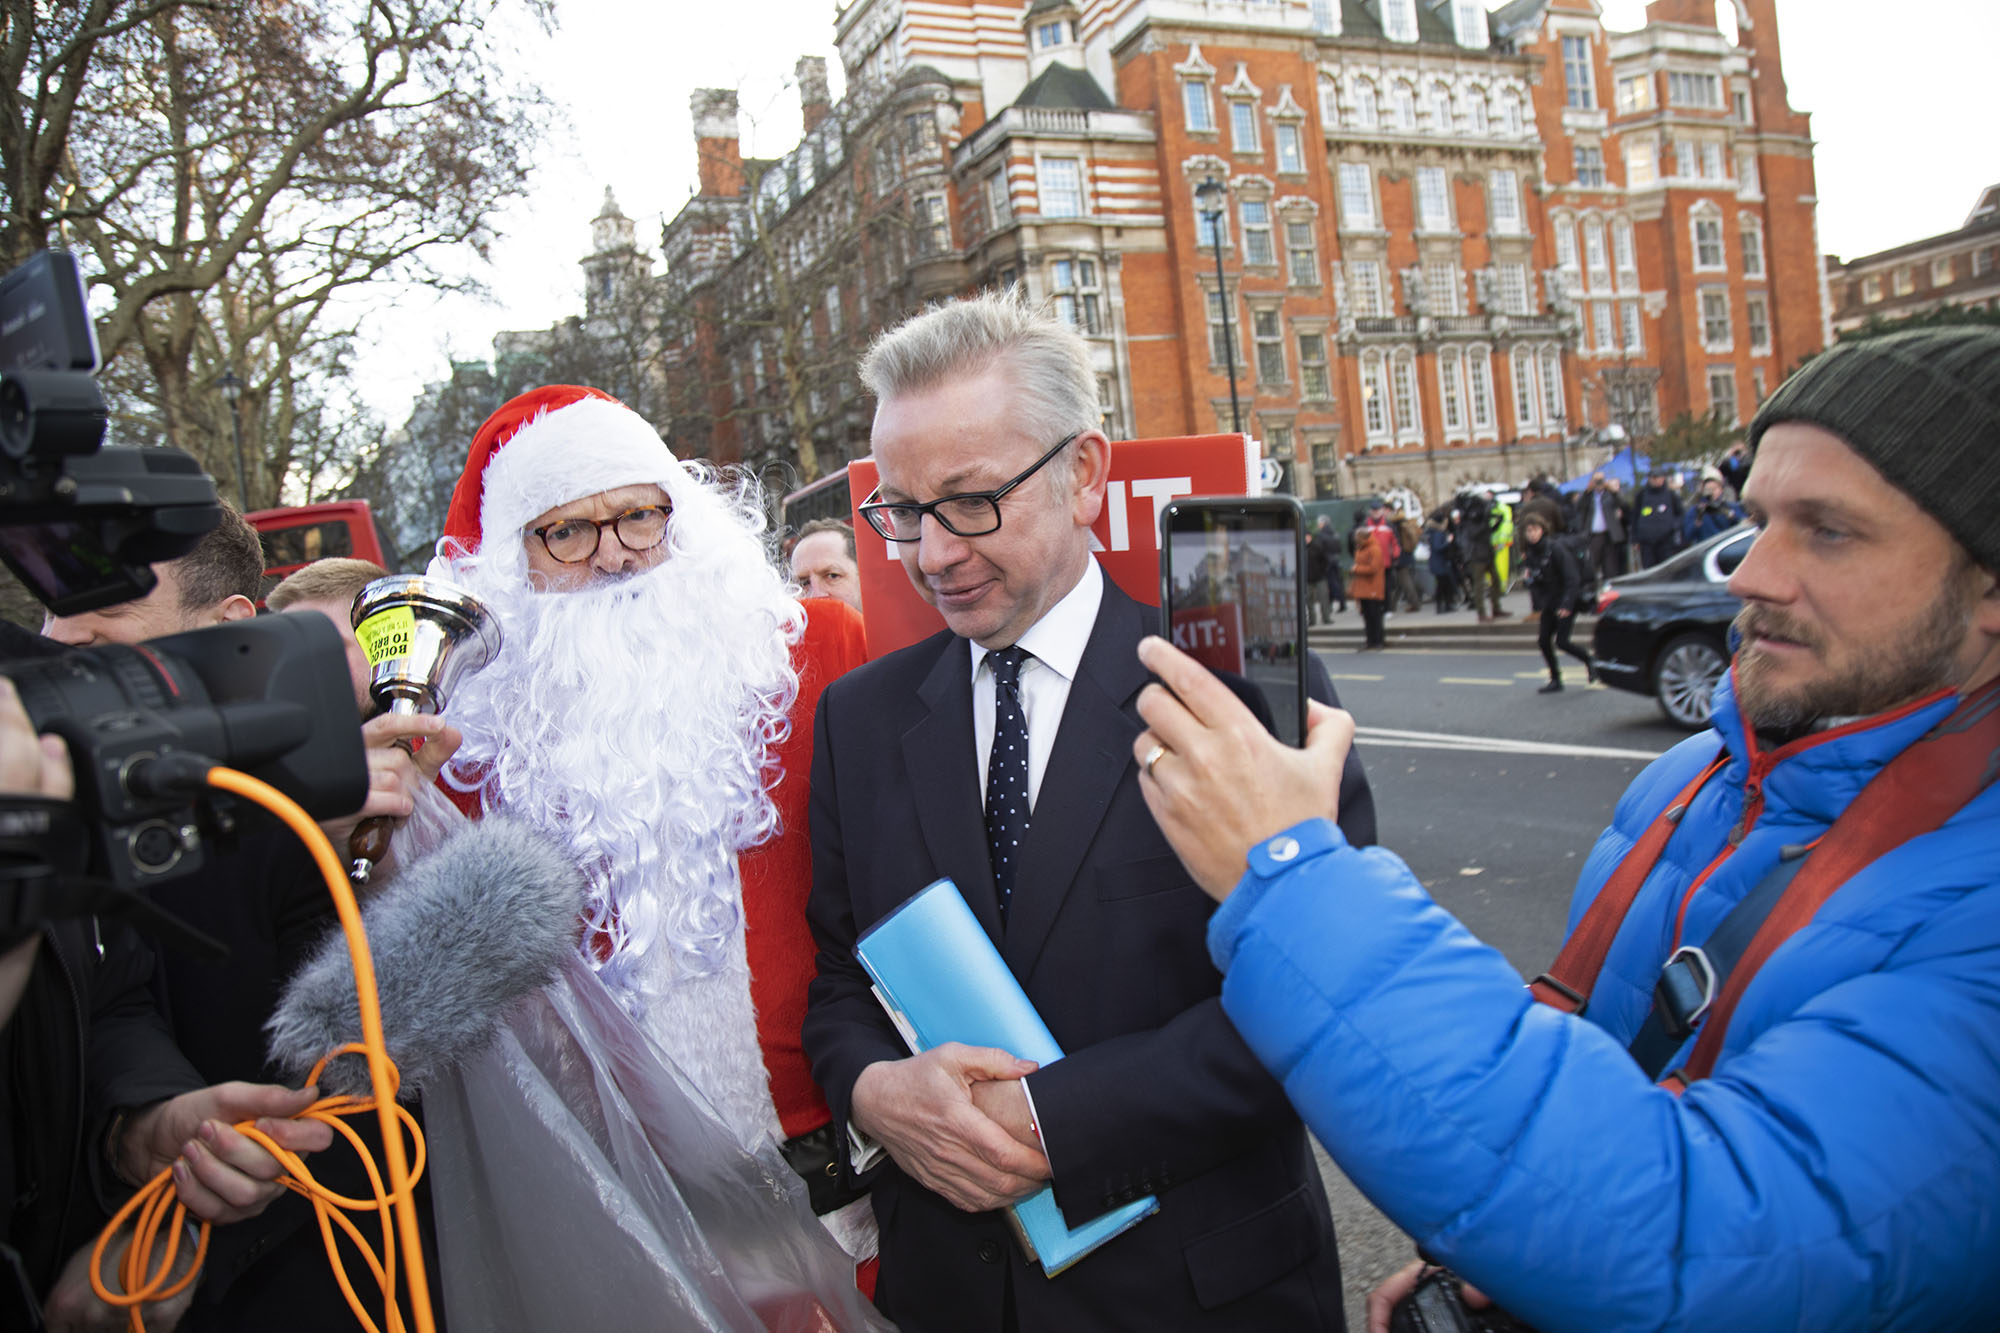 Anti Brexit demonstrator dressed up as Santa confronts Michael Gove MP shouting at him that he doesn't understand the needs and lives of ordinary people on the day that Conservative Party MPs triggered a vote of no confidence in the Prime Minister Theresa May.